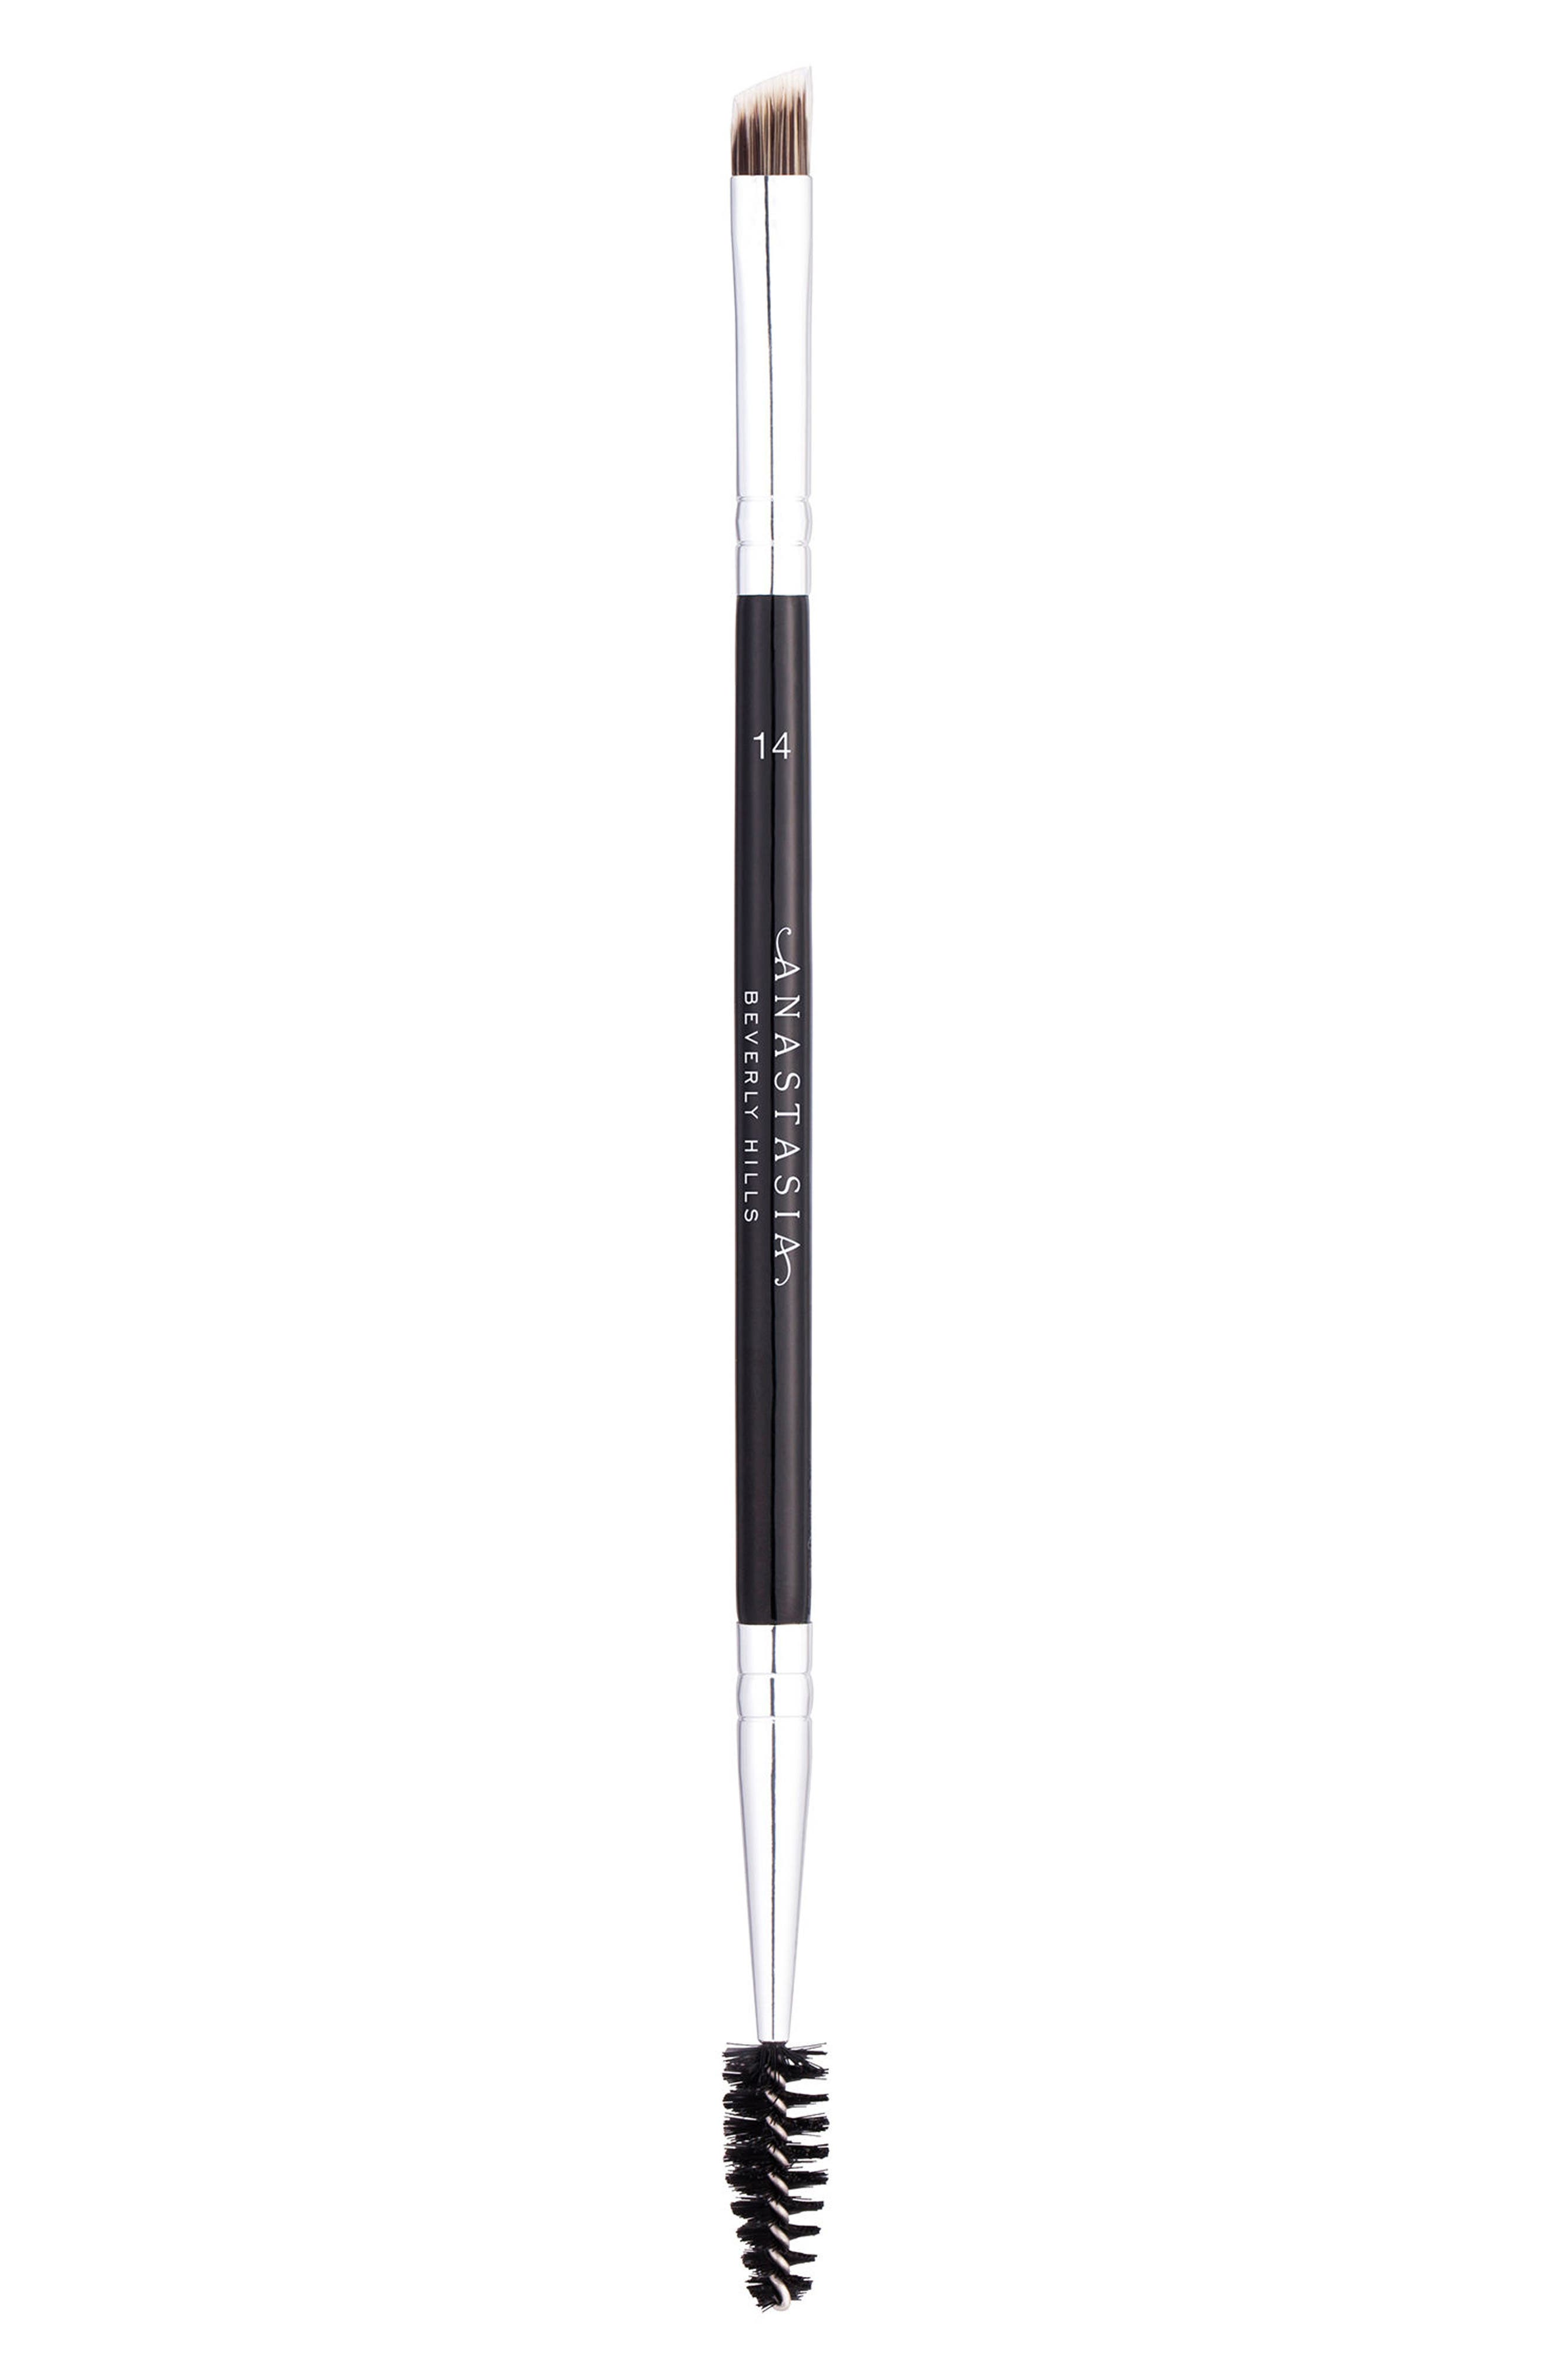 Main Image - Anastasia Beverly Hills #14 Dual-Sided Brow & Eyeliner Brush